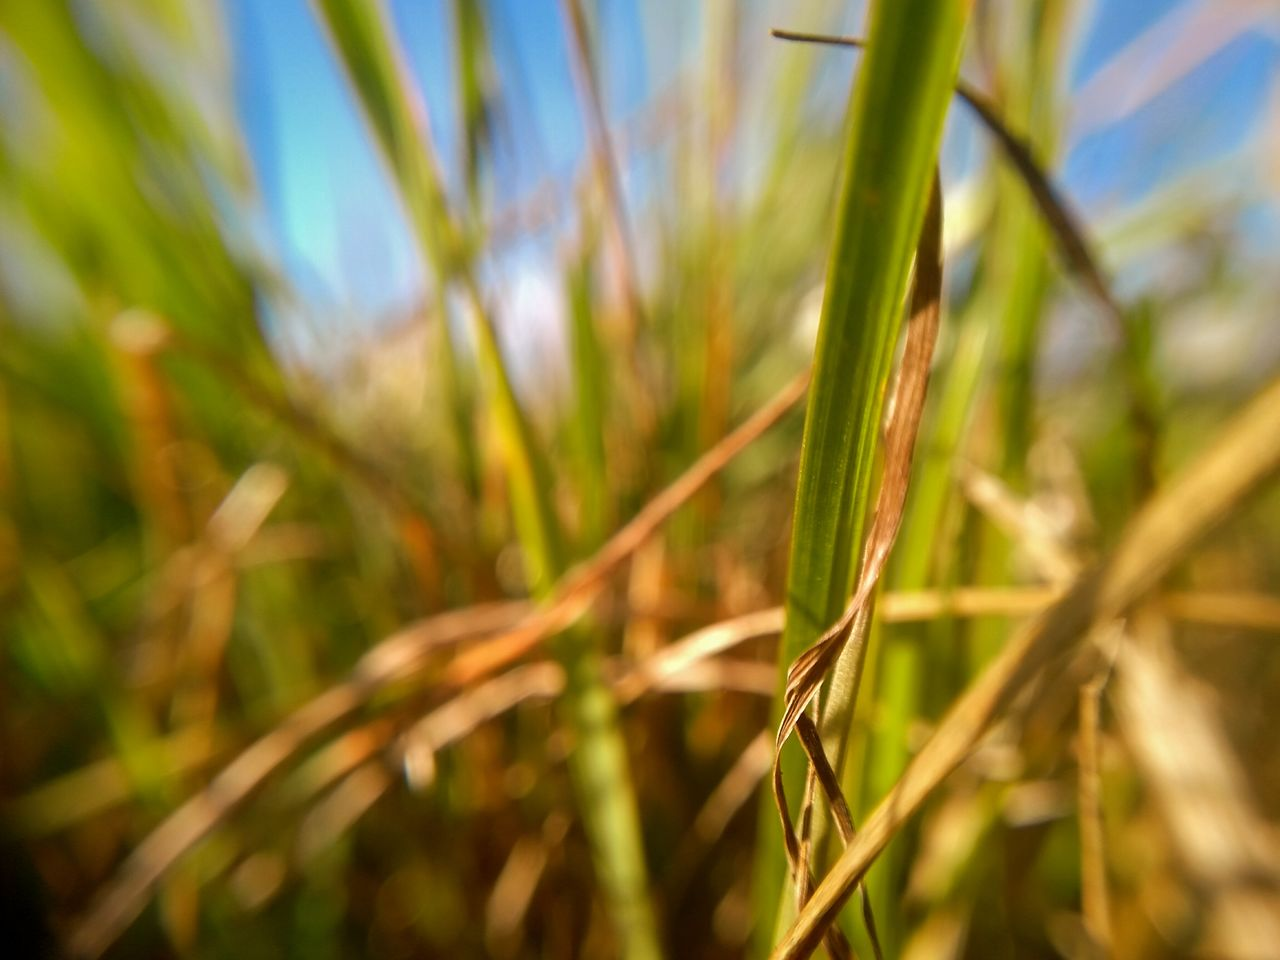 plant, growth, green color, nature, close-up, field, cereal plant, beauty in nature, agriculture, tranquility, selective focus, crop, day, grass, no people, land, focus on foreground, rural scene, sunlight, farm, outdoors, blade of grass, plantation